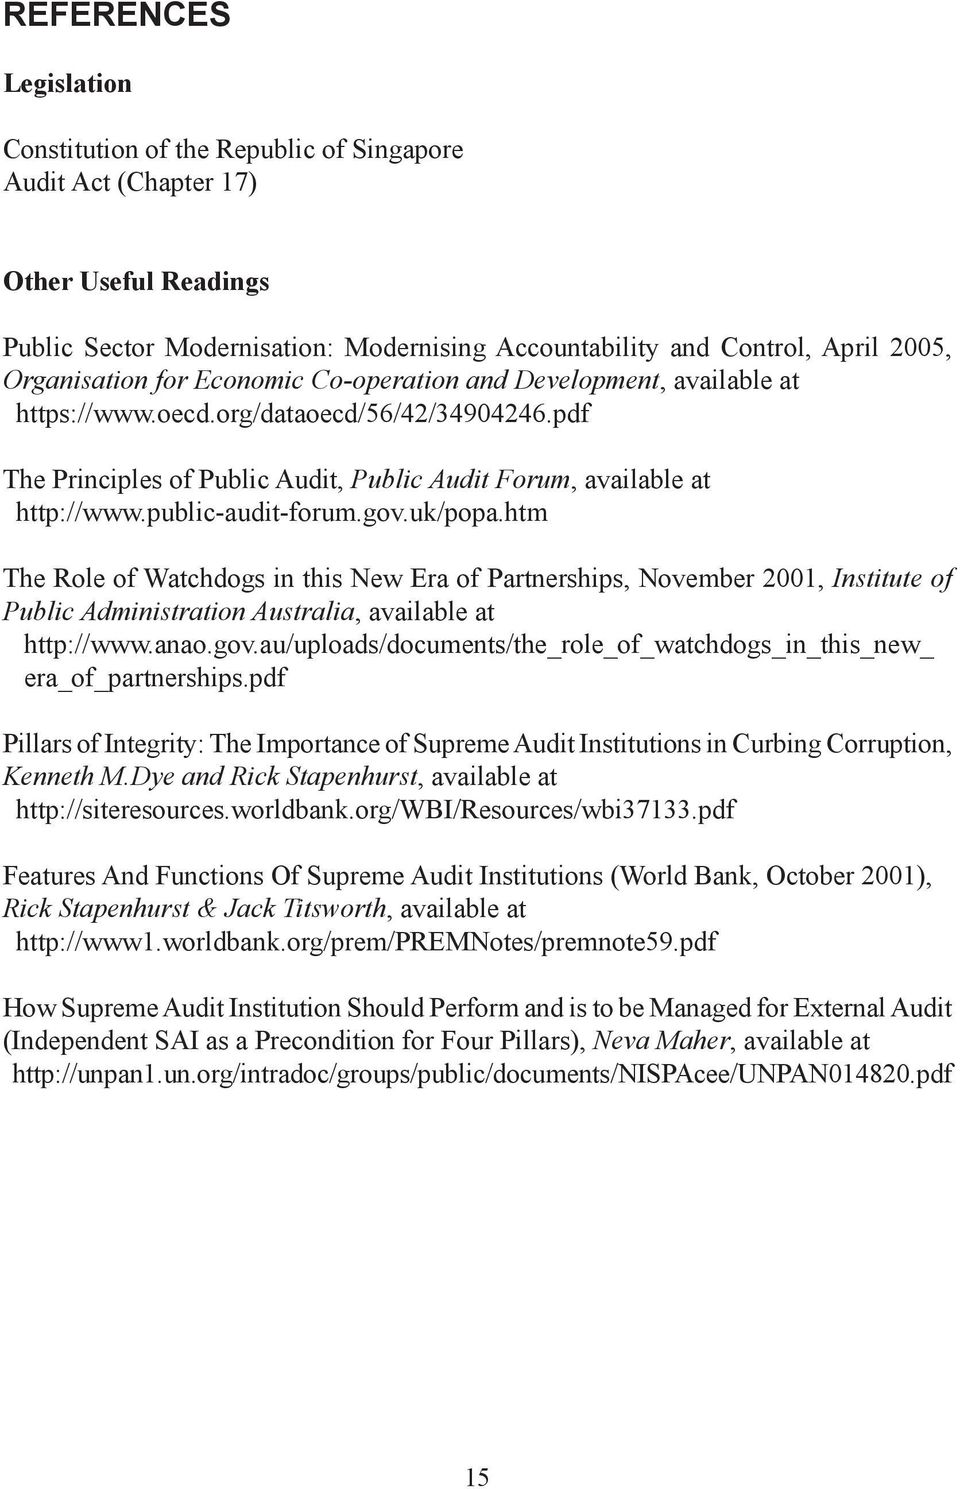 public-audit-forum.gov.uk/popa.htm The Role of Watchdogs in this New Era of Partnerships, November 2001, Institute of Public Administration Australia, available at http://www.anao.gov.au/uploads/documents/the_role_of_watchdogs_in_this_new_ era_of_partnerships.